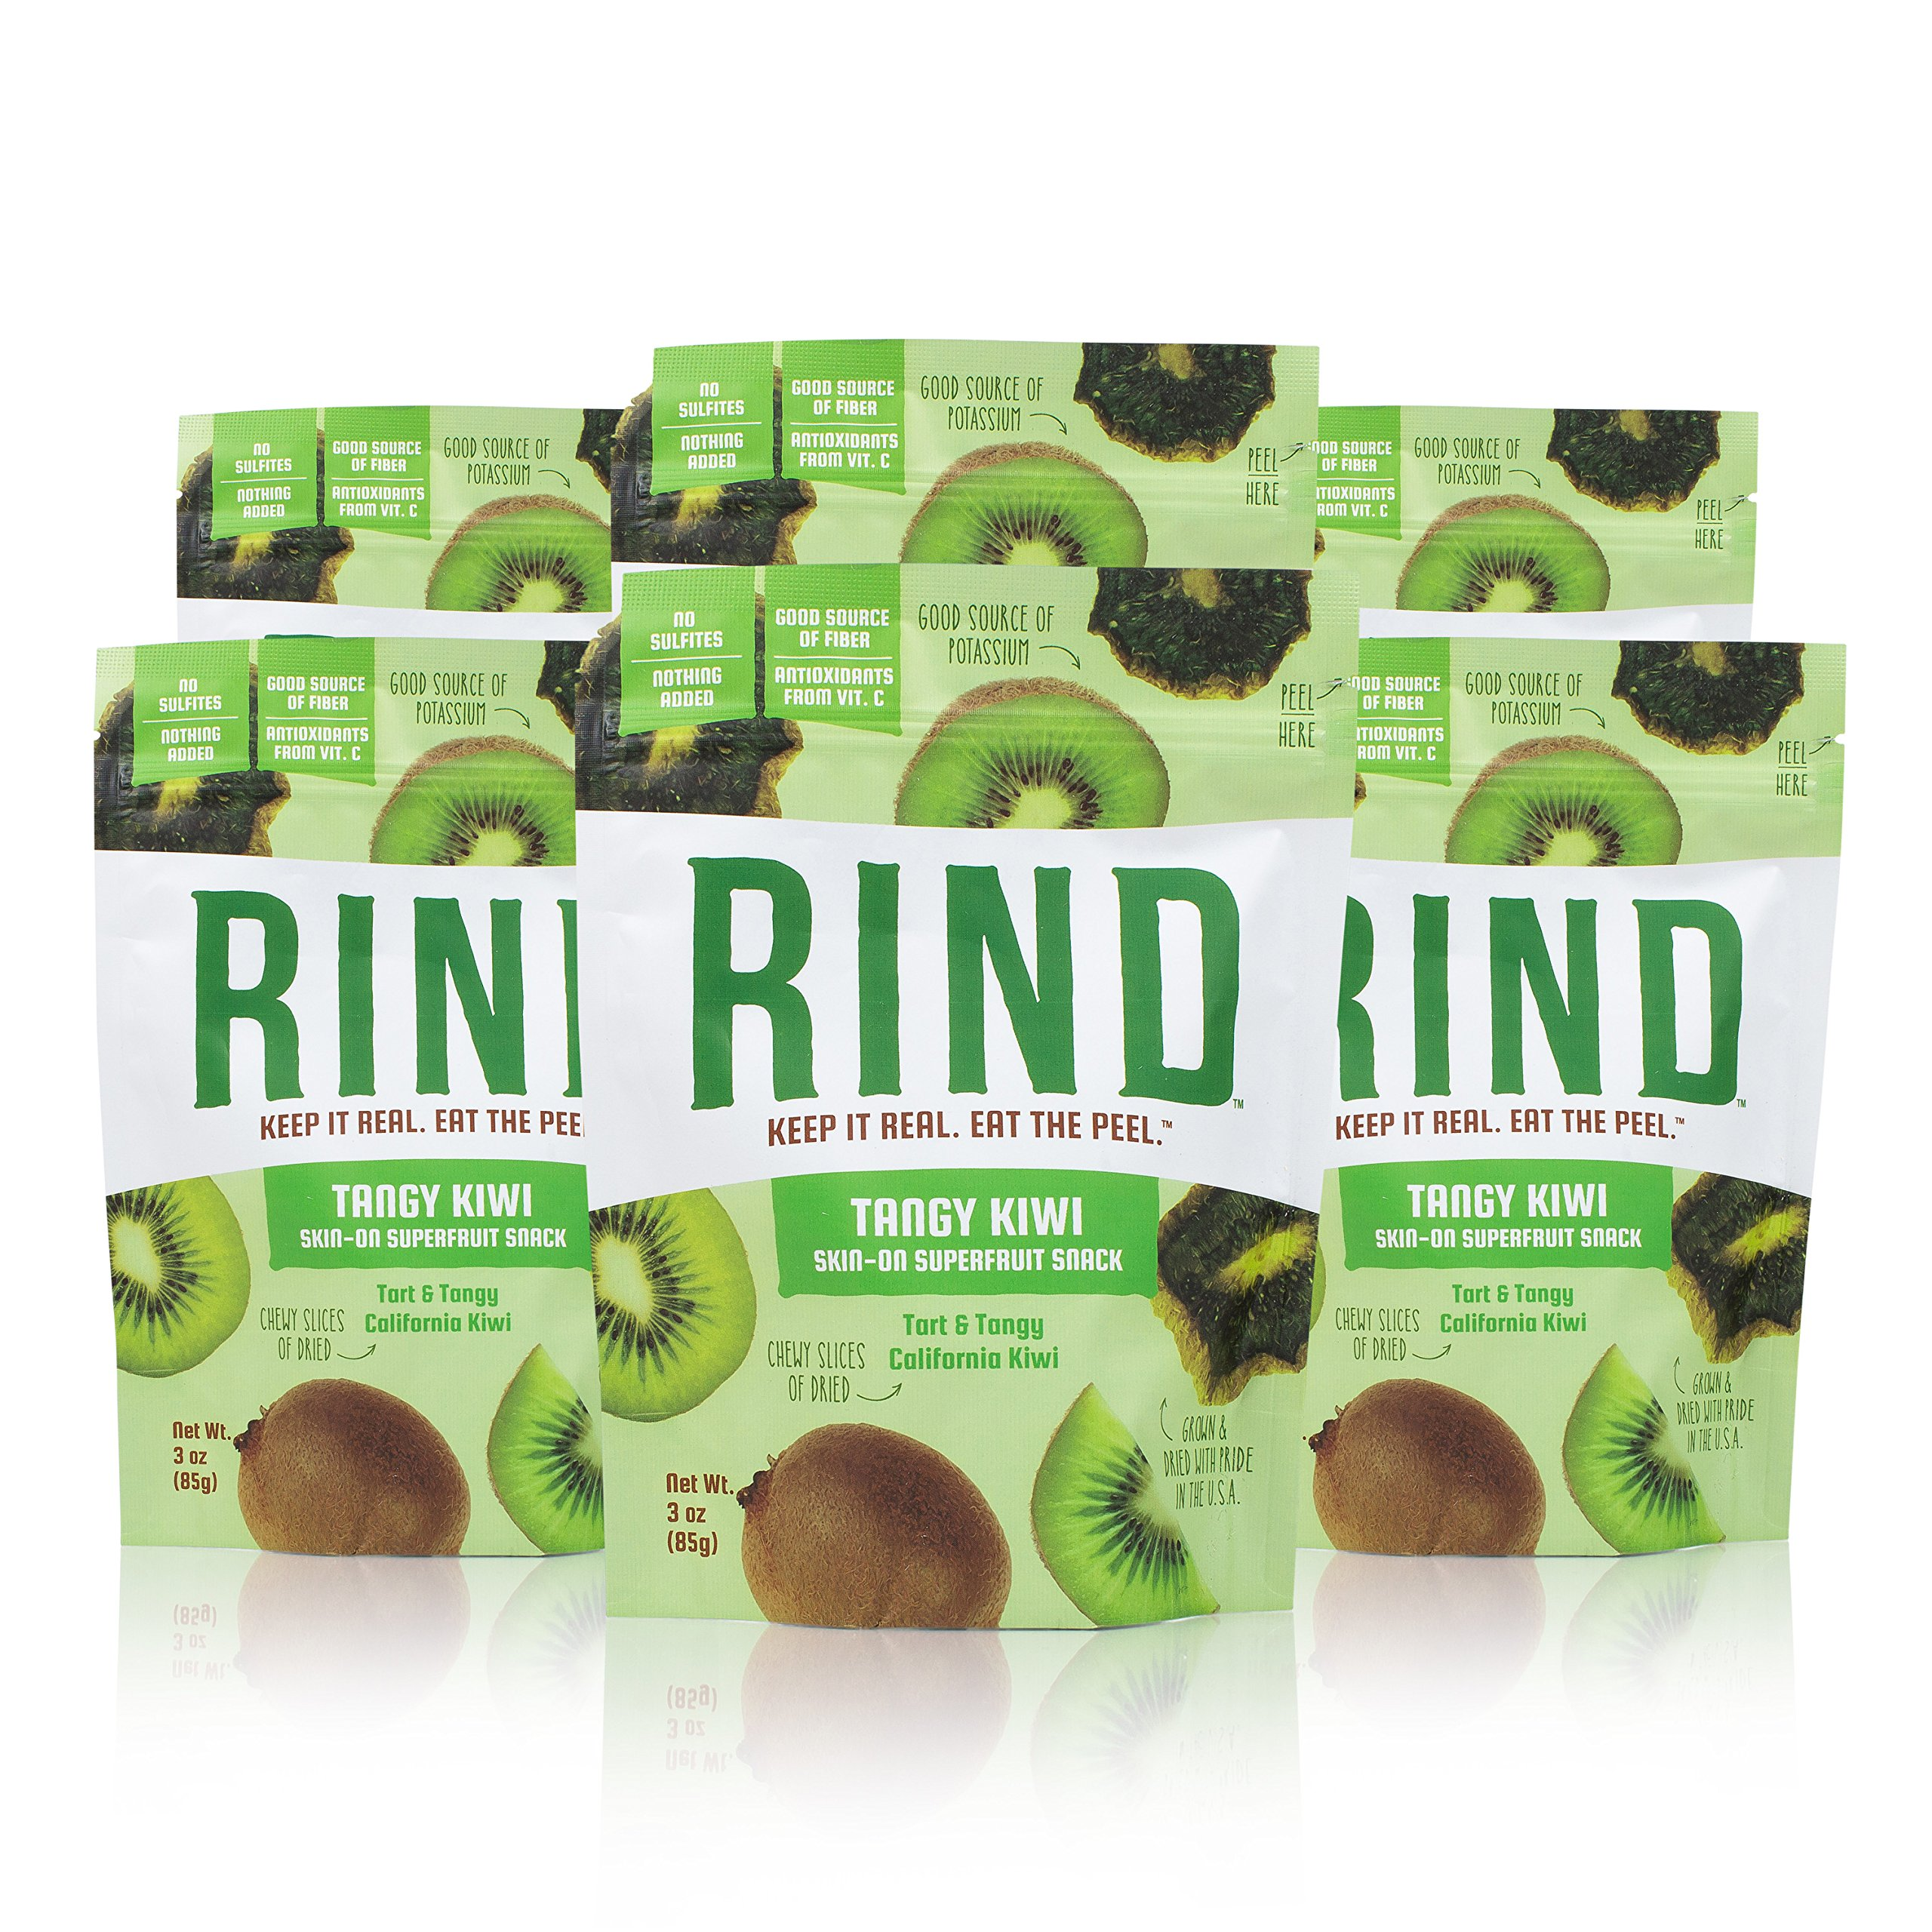 RIND Snacks Tangy Kiwi Sun-Dried Skin-On Superfruit Snack, High Fiber, No Sulfites, Antioxidants from Vitamin C, Non-GMO, Gluten-Free, 3oz Pouch, Pack of 6